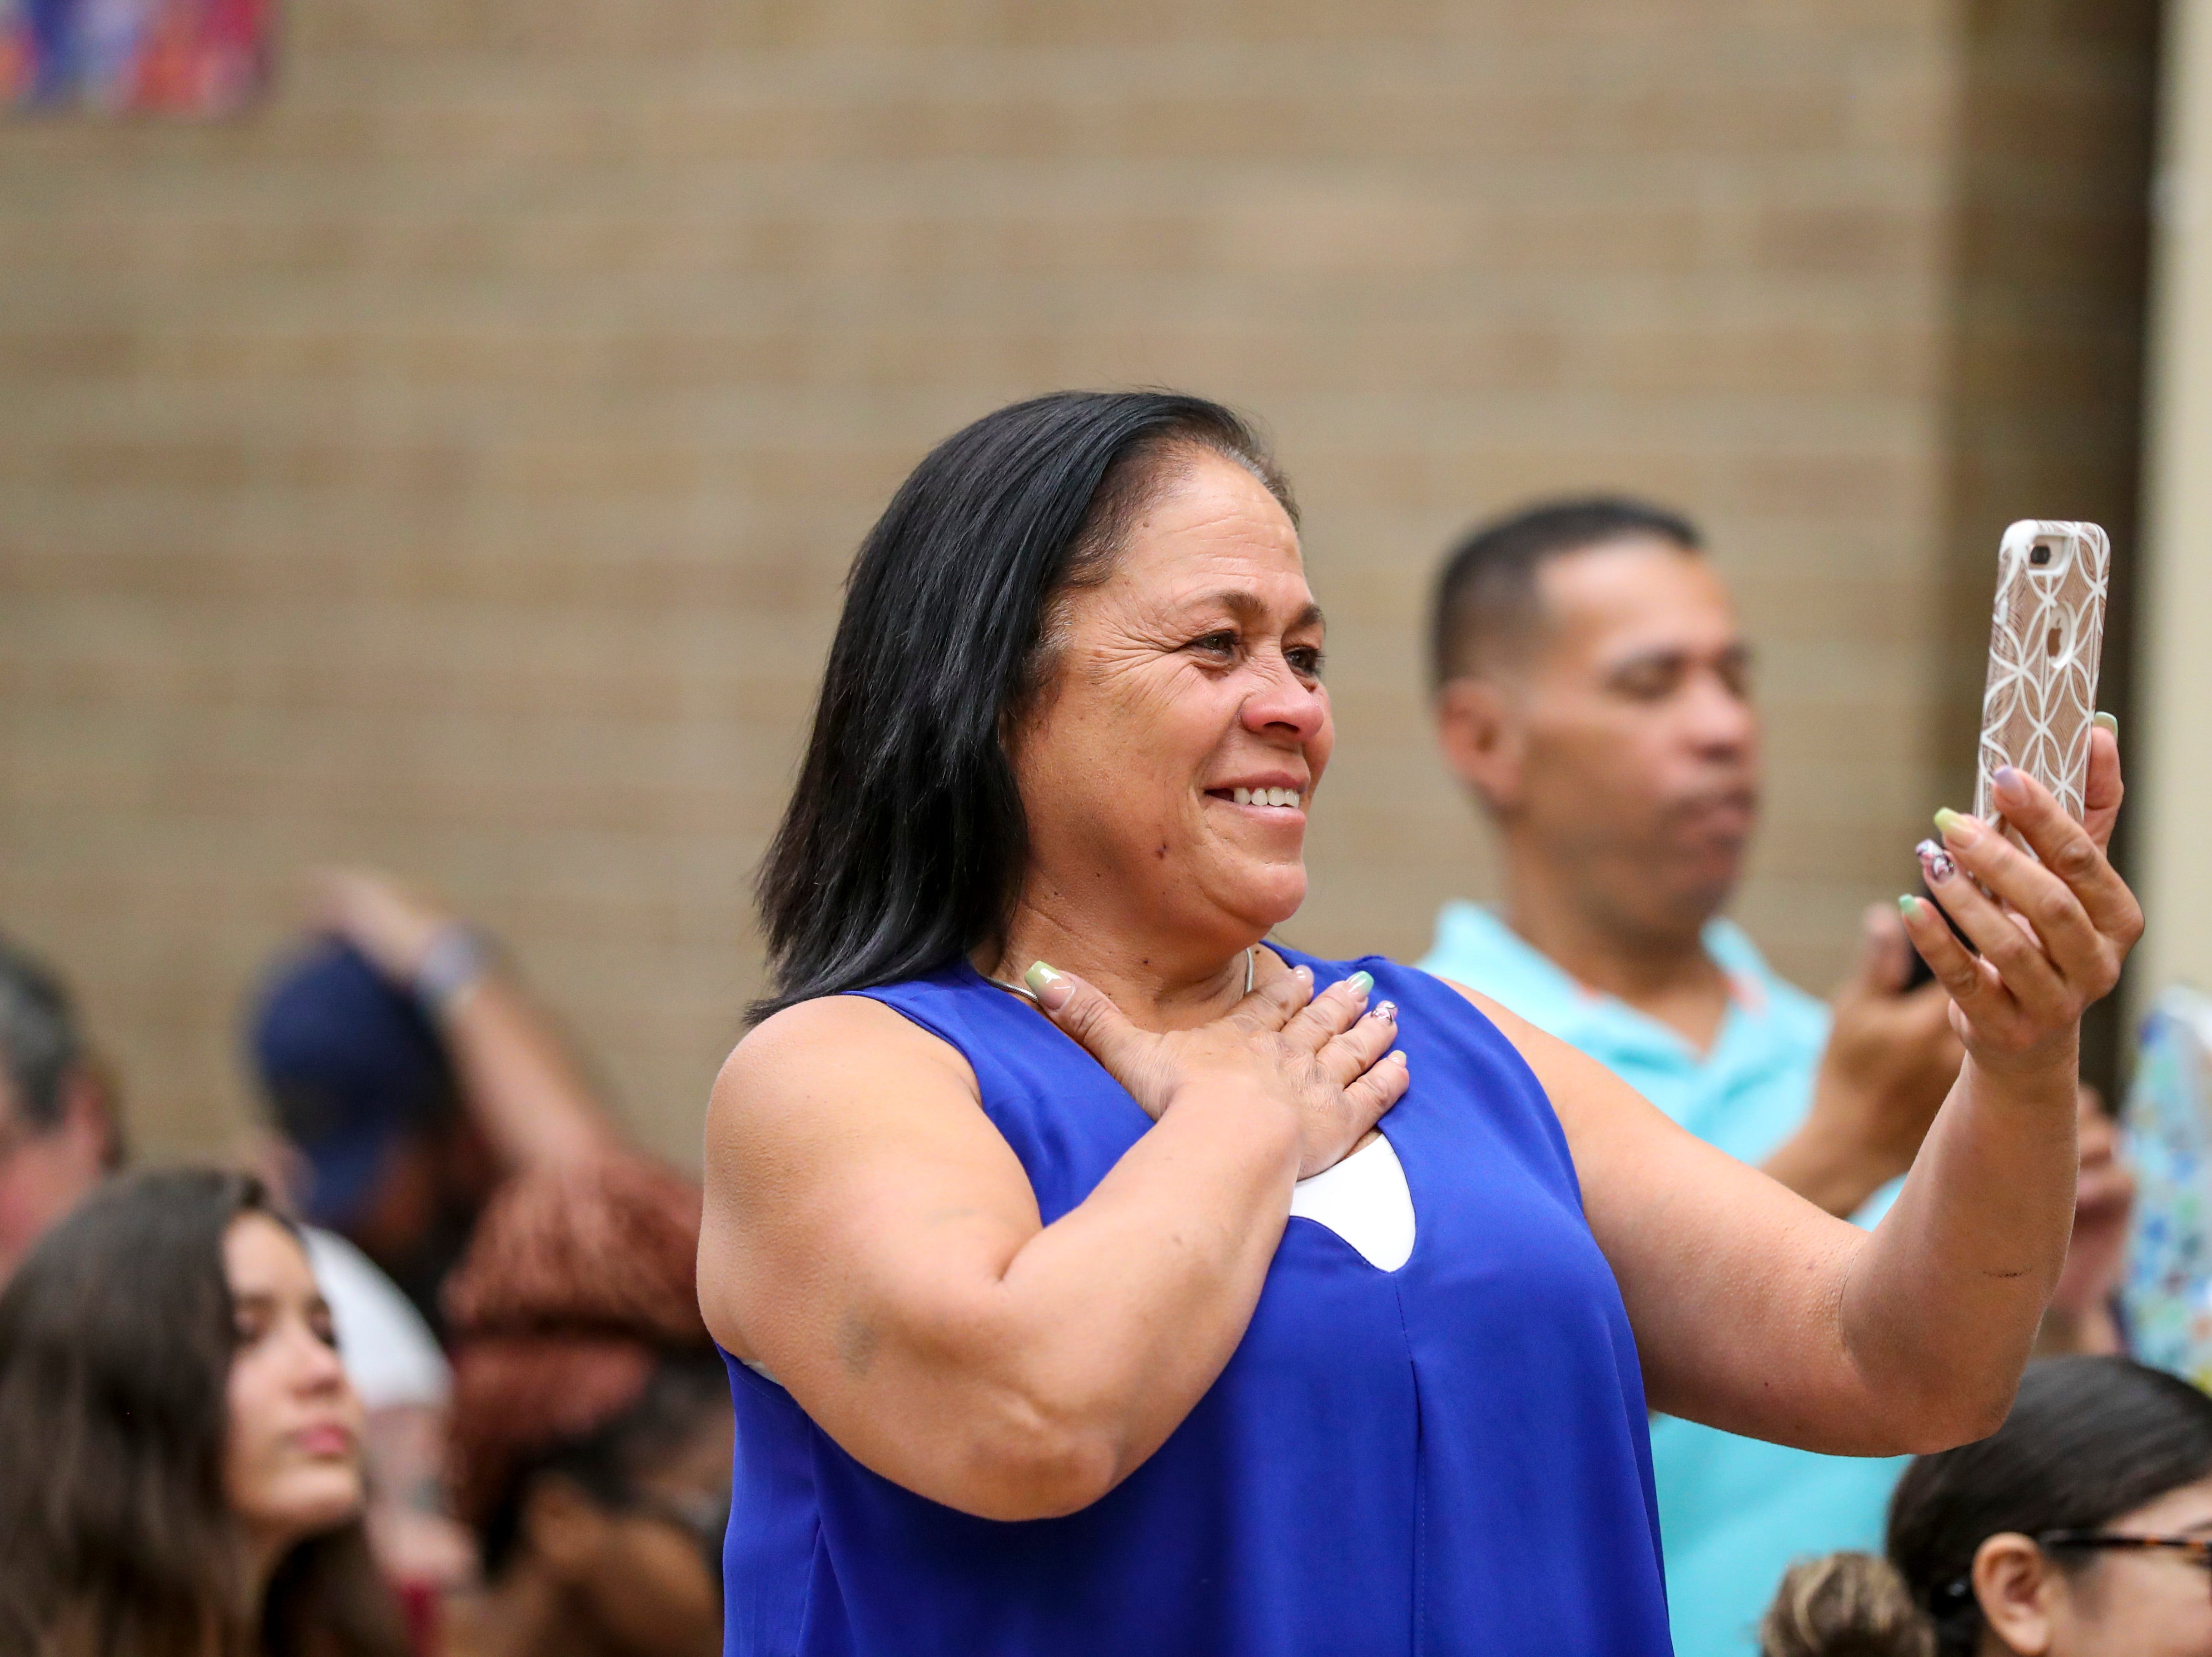 Carmen Galan was a proud grandmother as she watched Melvin Reyes receive his diploma. 13 students at Buckingham Exceptional Student Center graduated during a ceremony in their honor. Family, friends, and staff were there to honor the graduates.